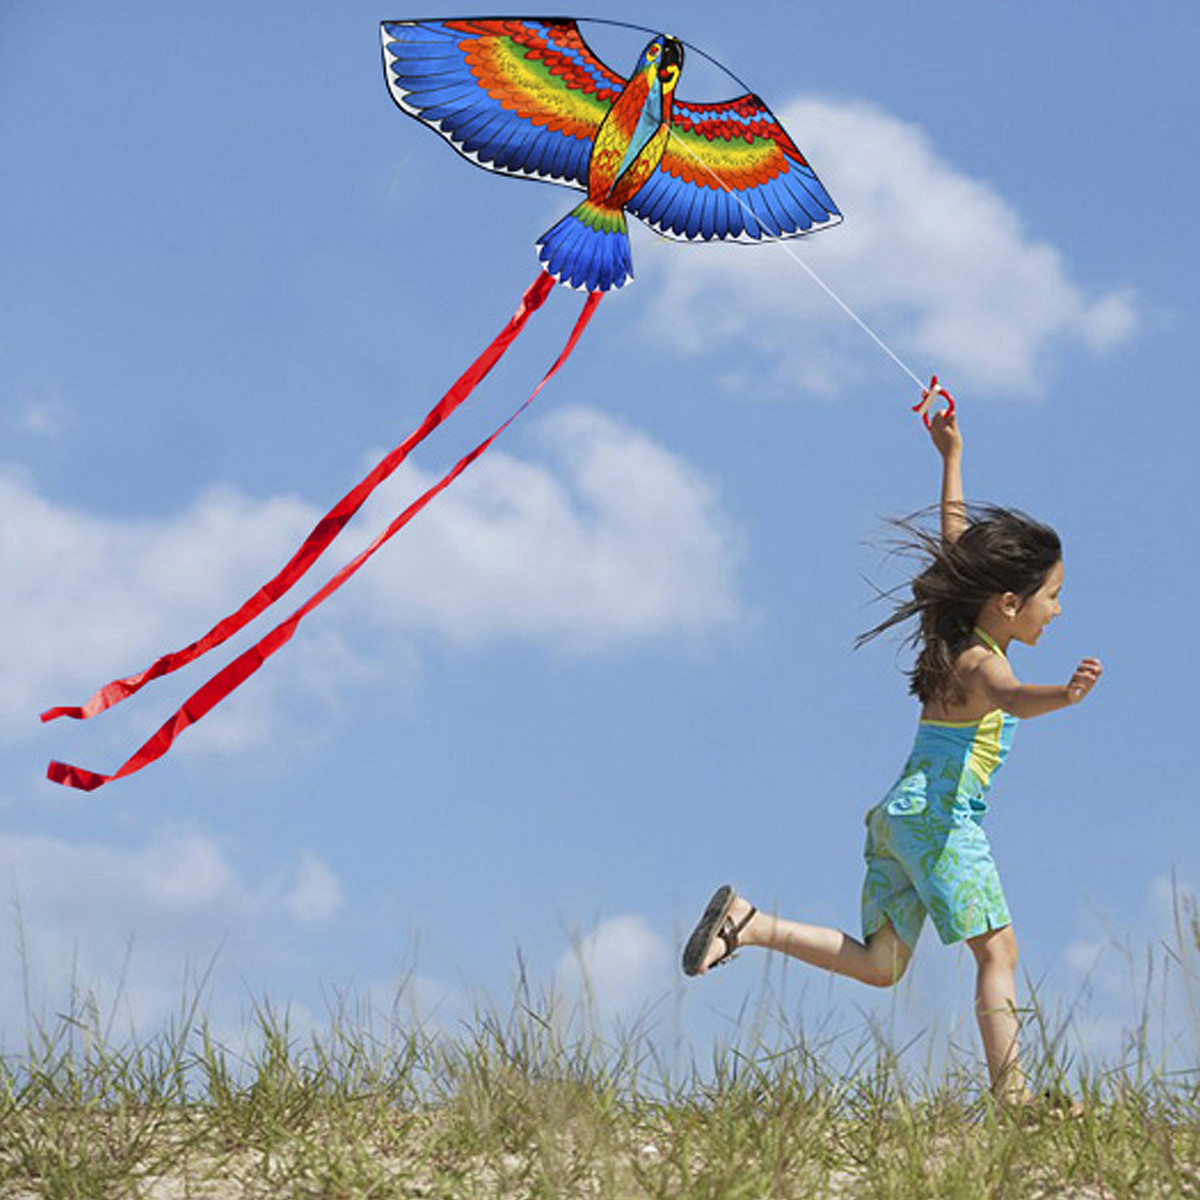 Amiable New Outdoors Fun Sports Doll 100x50cm Parrots Kite+kite String With Plastic Handle Flying?kite As Children Gifts Traveling Kites & Accessories Toys & Hobbies